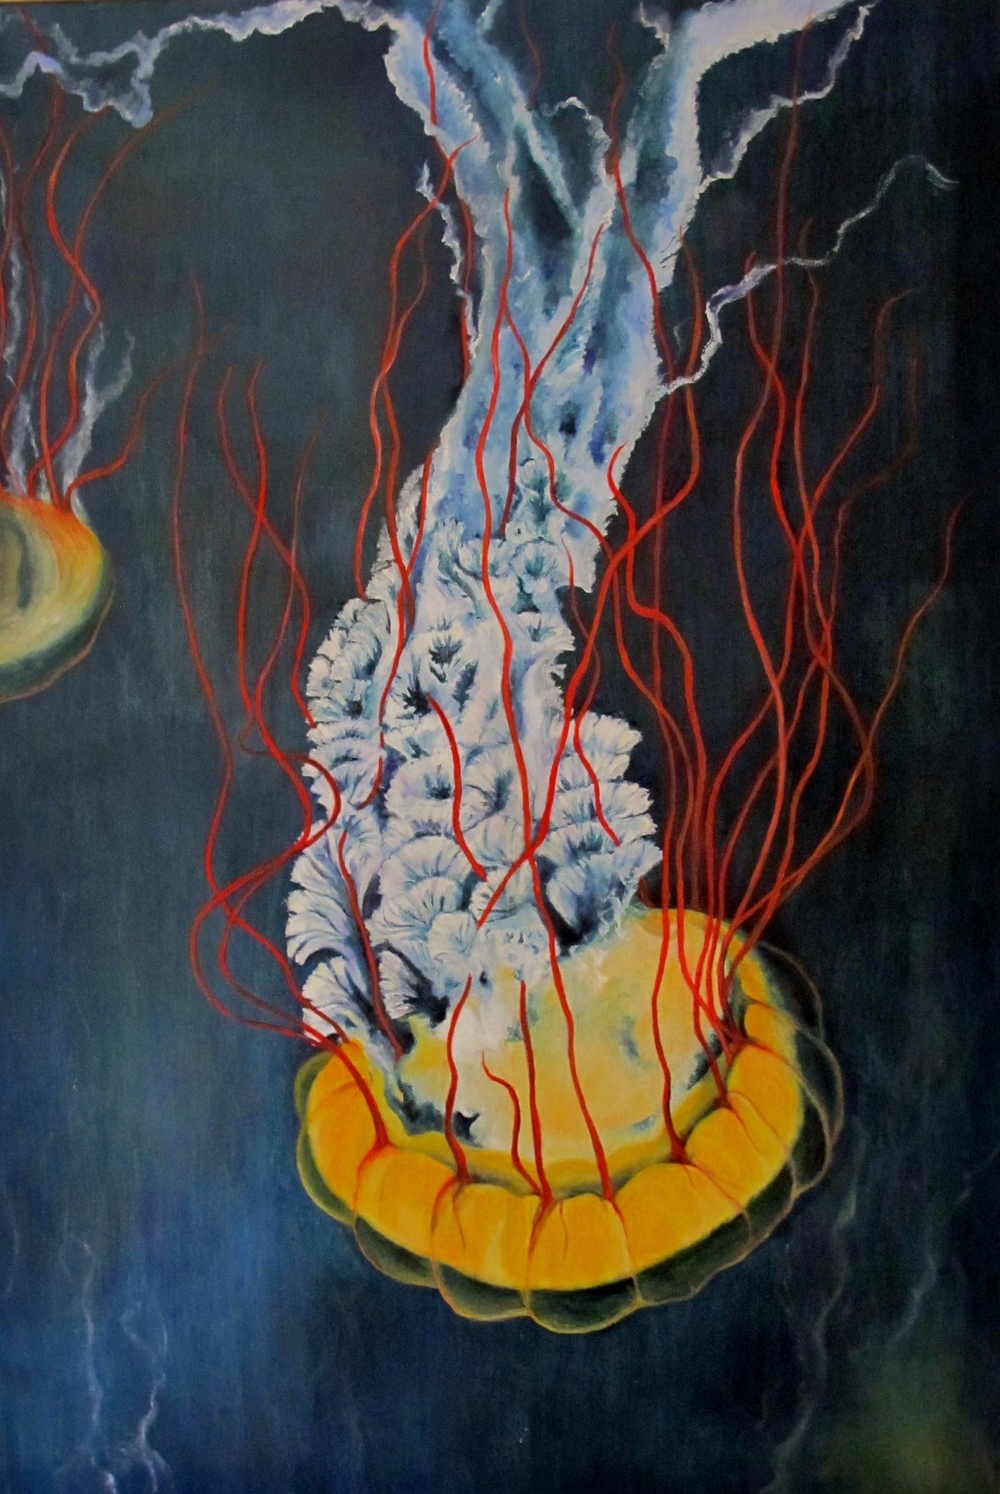 Earl the Cnidaria , 2012 Oil on canvas, 36 x 24 inches